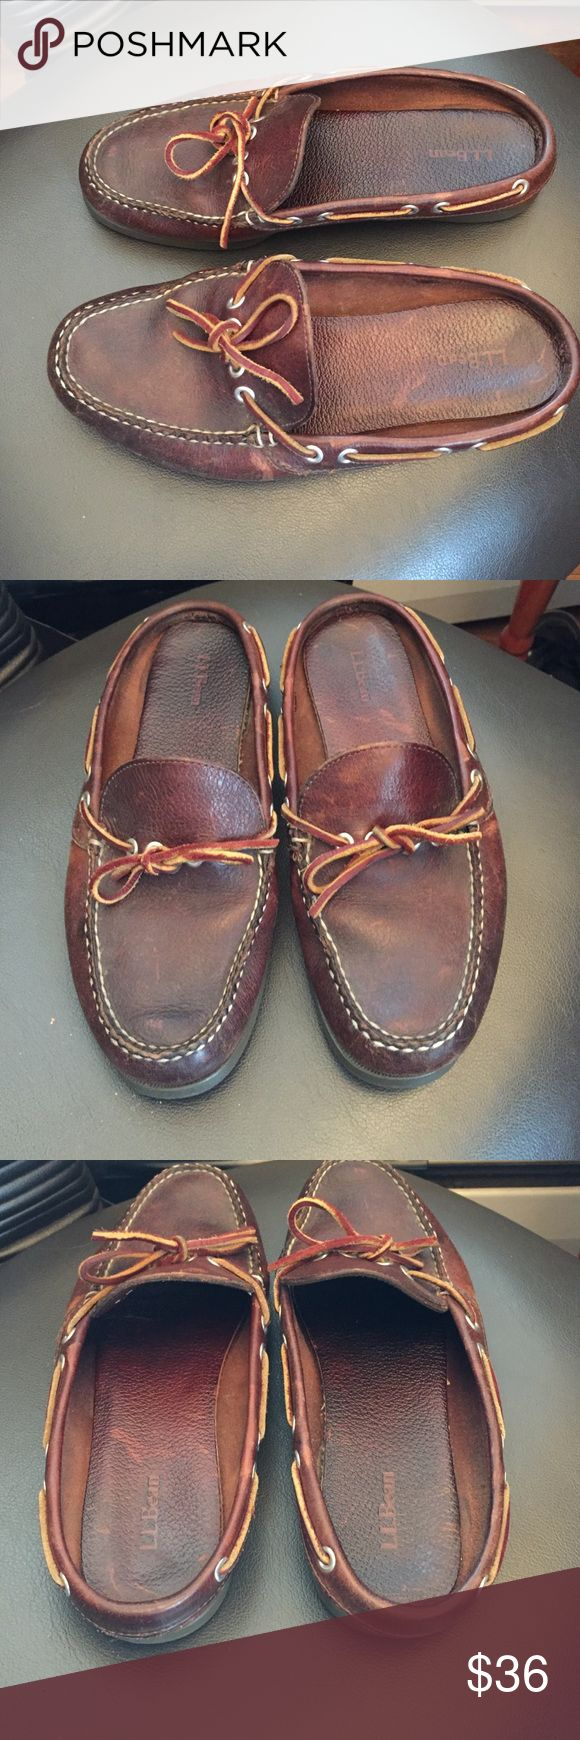 LL Bean slip on leather moccasins These shoes are in great condition. Perfect for wearing around the house and on the go. Conventional  slip on style with a nice look. L.L. Bean Shoes Moccasins